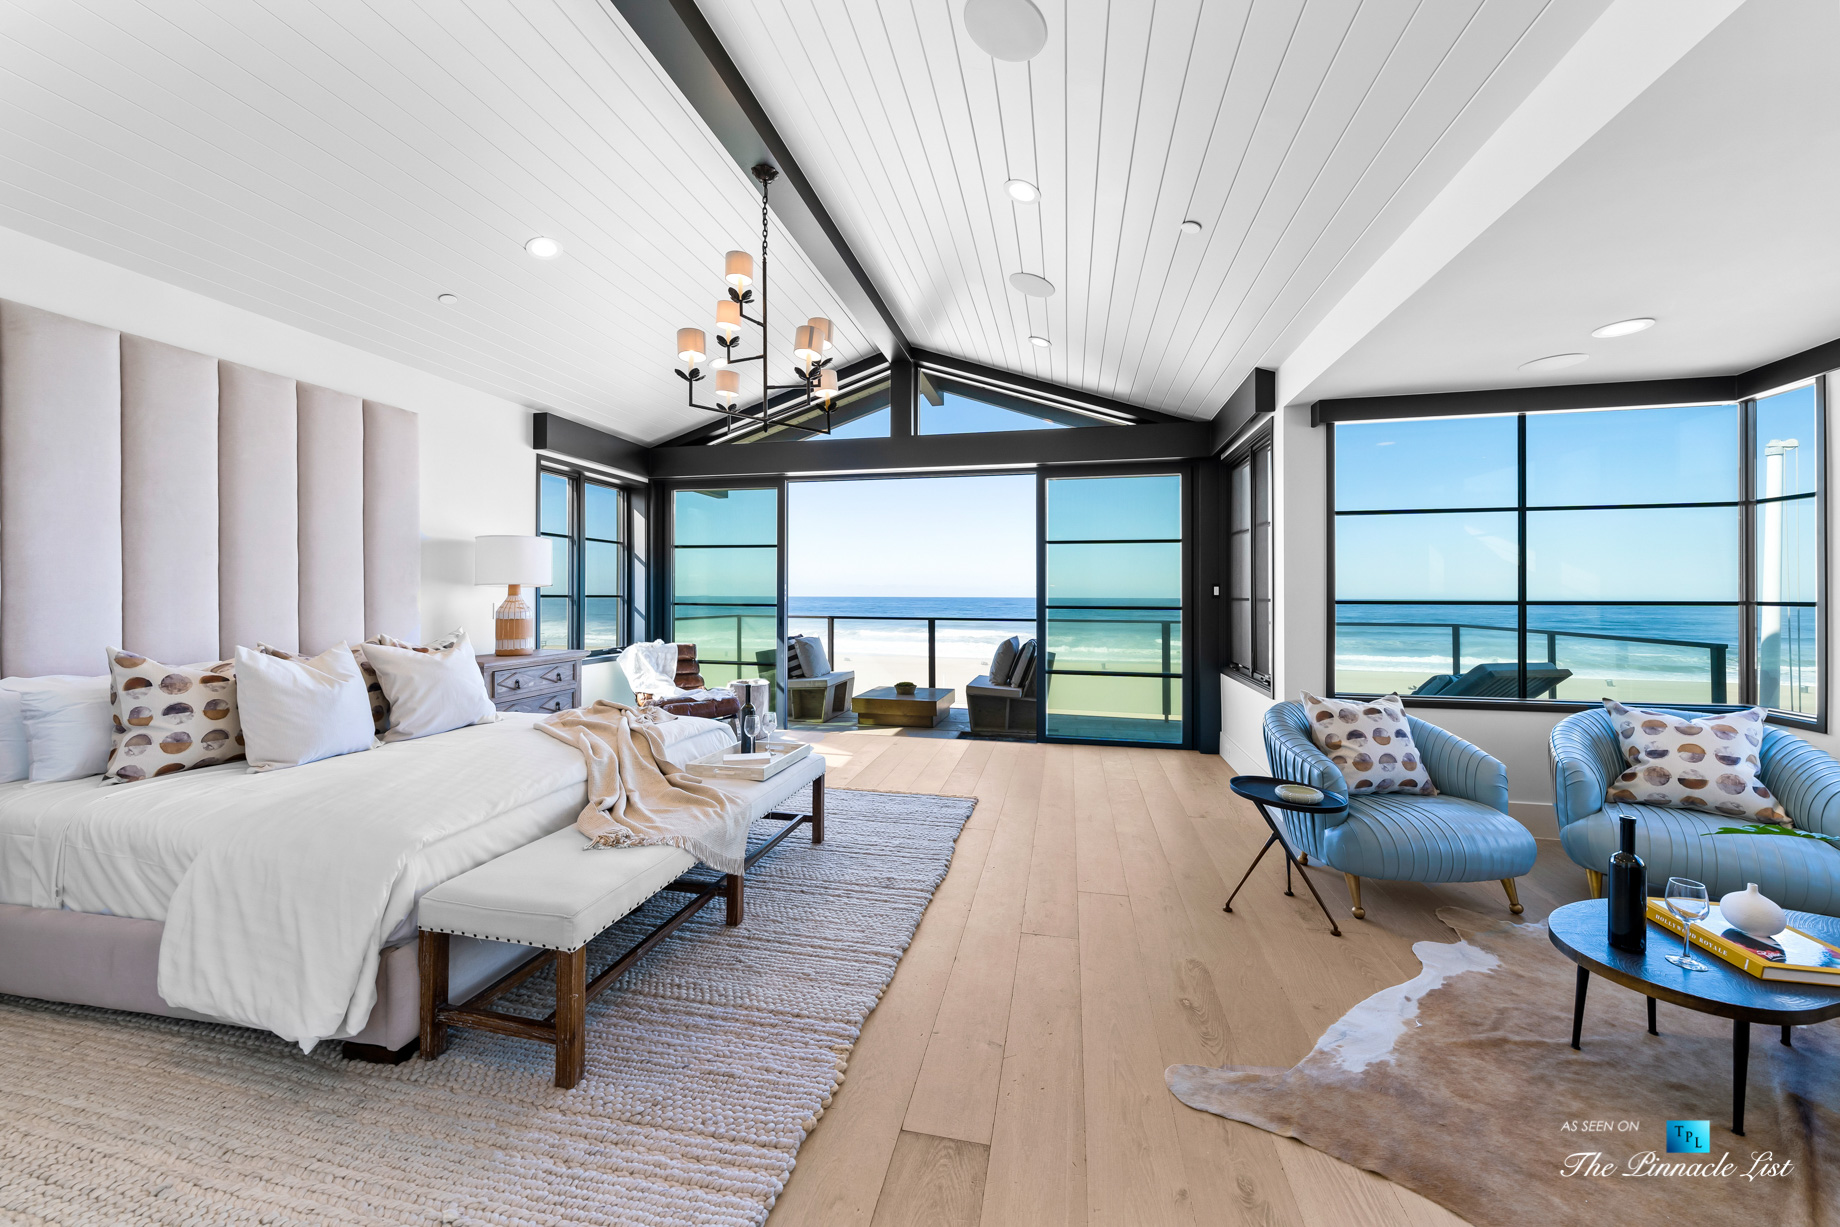 508 The Strand, Manhattan Beach, CA, USA - Master Bedroom Suite - Luxury Real Estate - Oceanfront Home